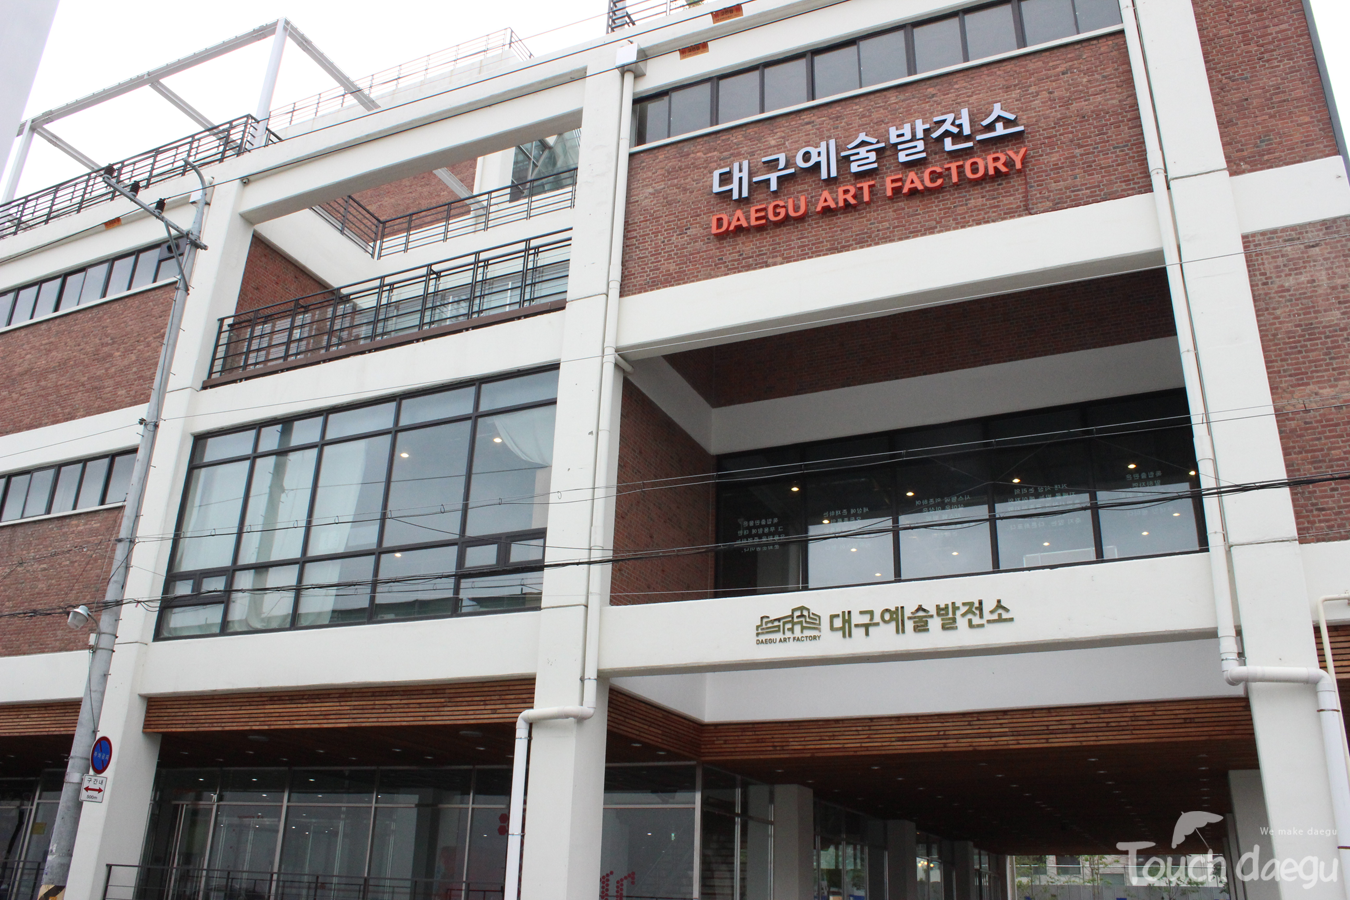 Daegu art factory_ Korean stamp trail